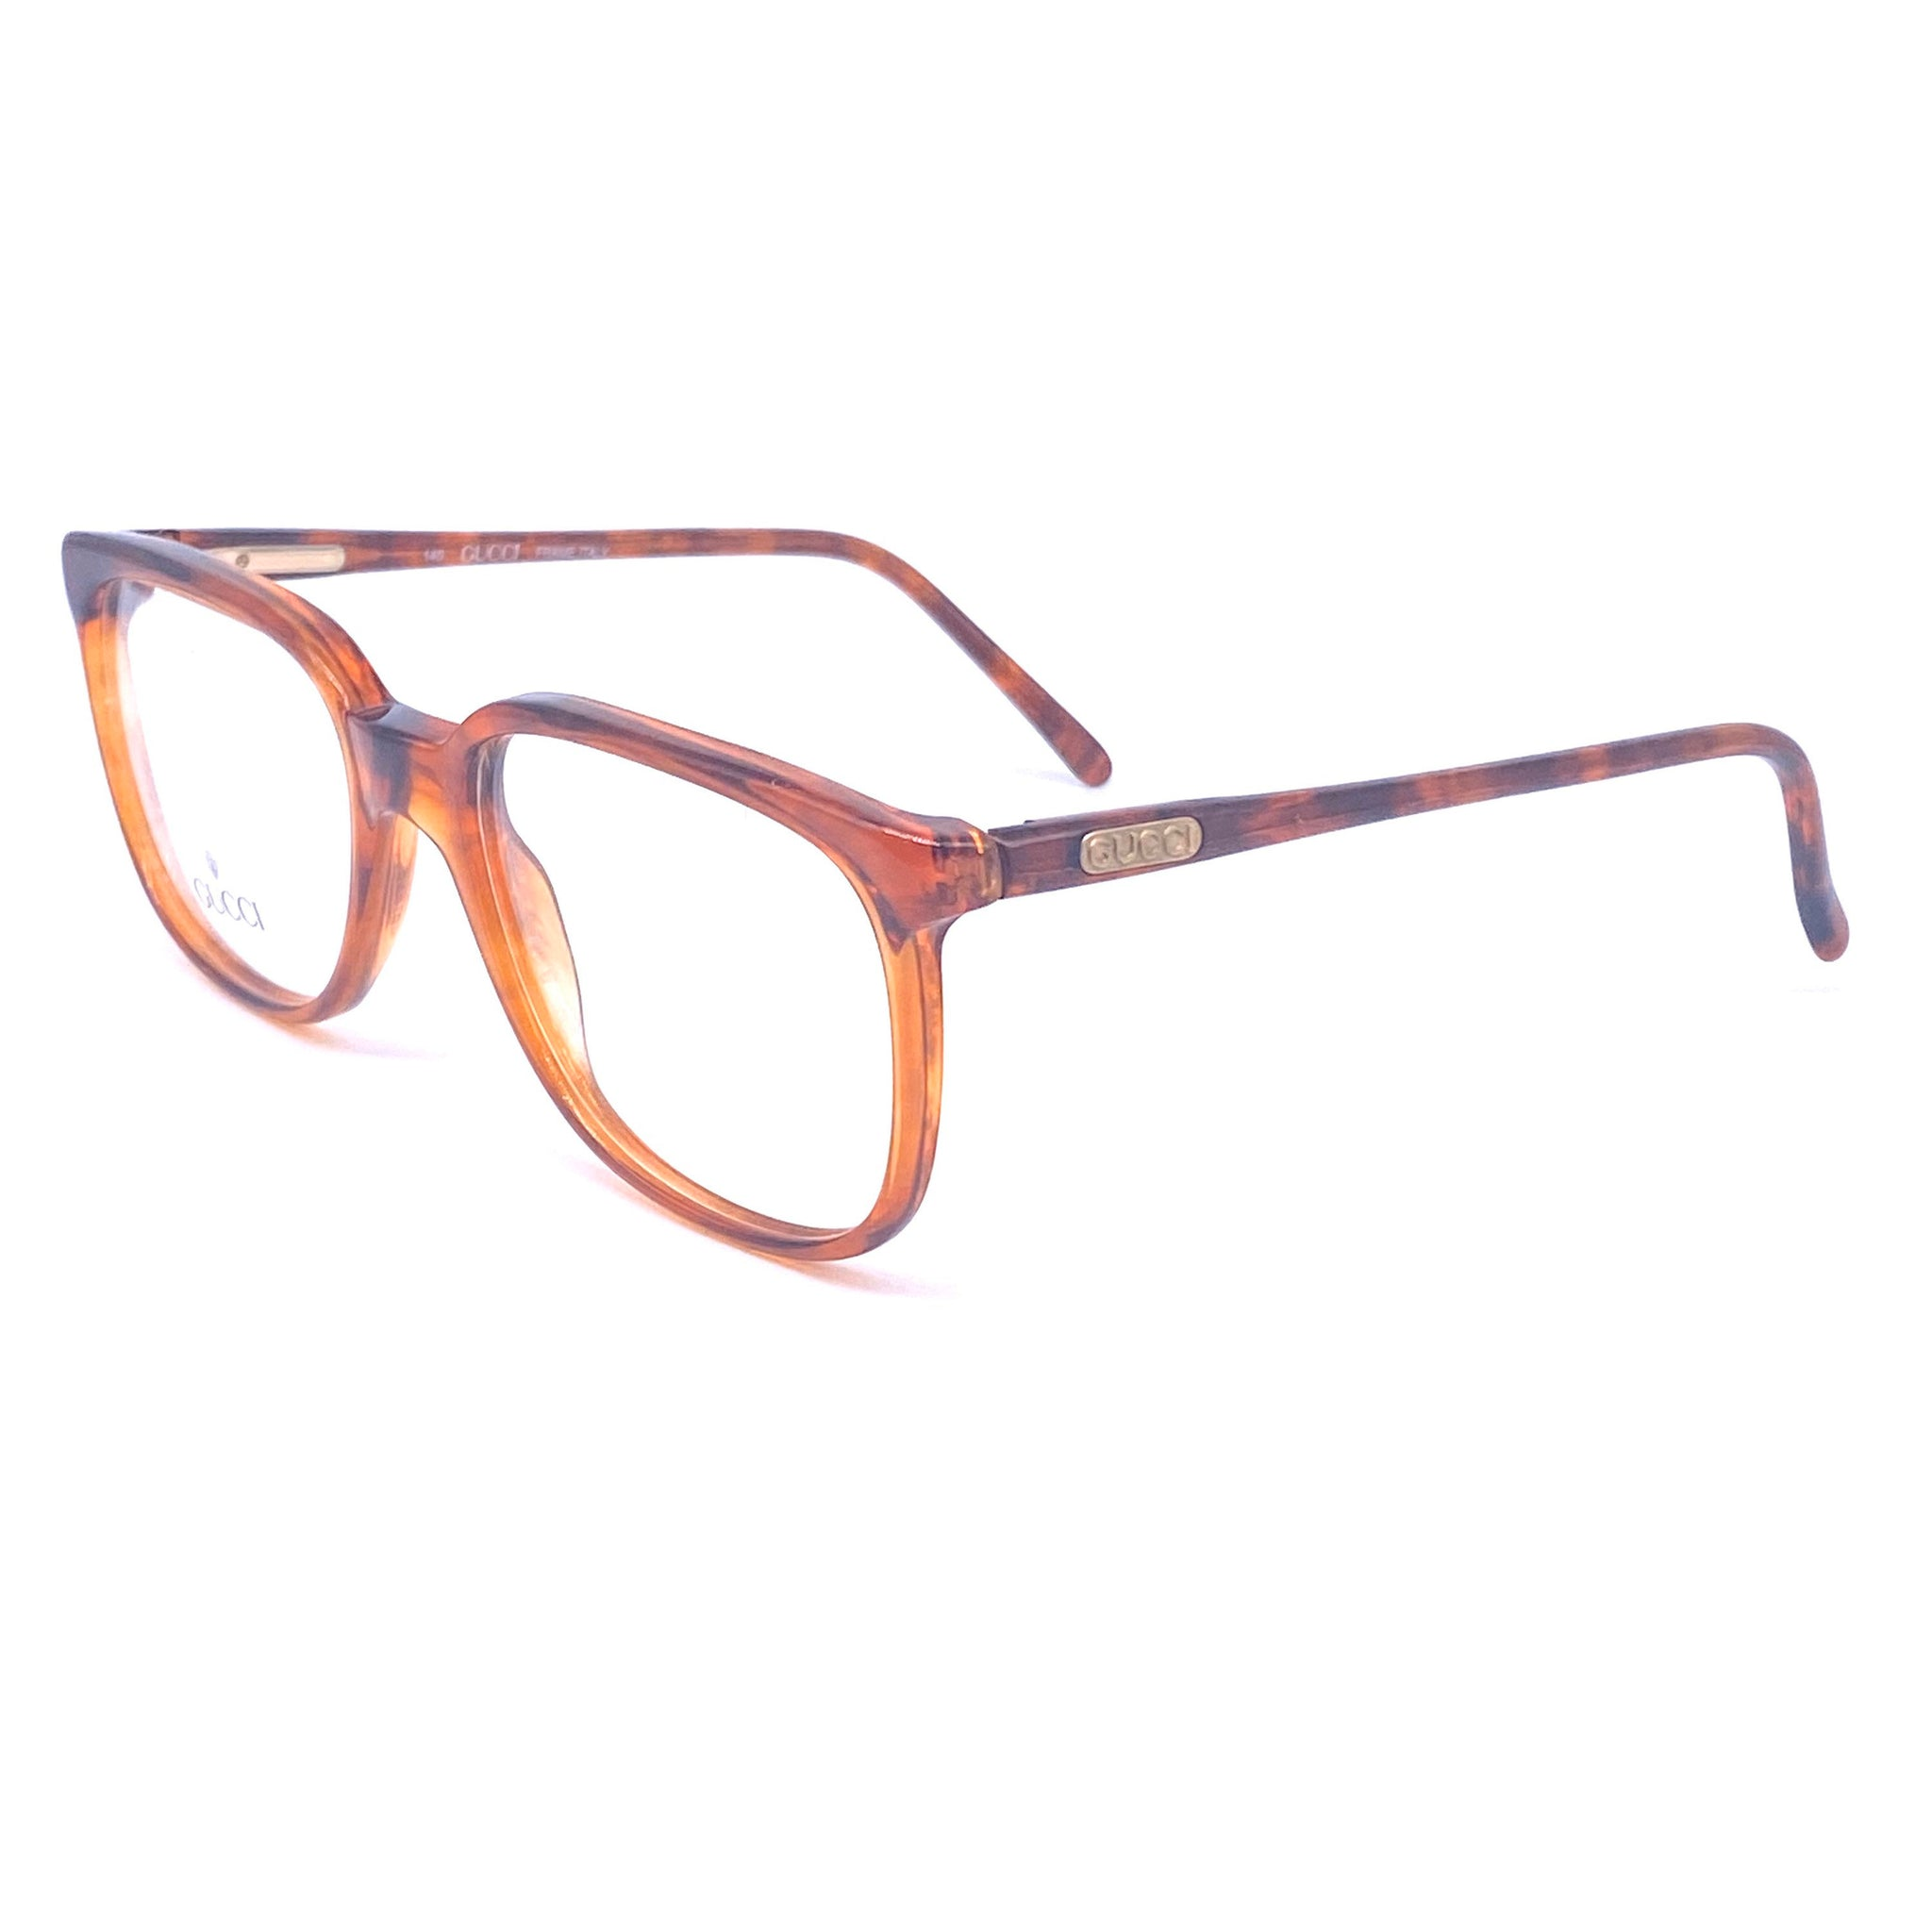 Gucci 1132 vintage tortoise cello eyeglasses frames hand made in Italy, 1980z NOS - viceversashop